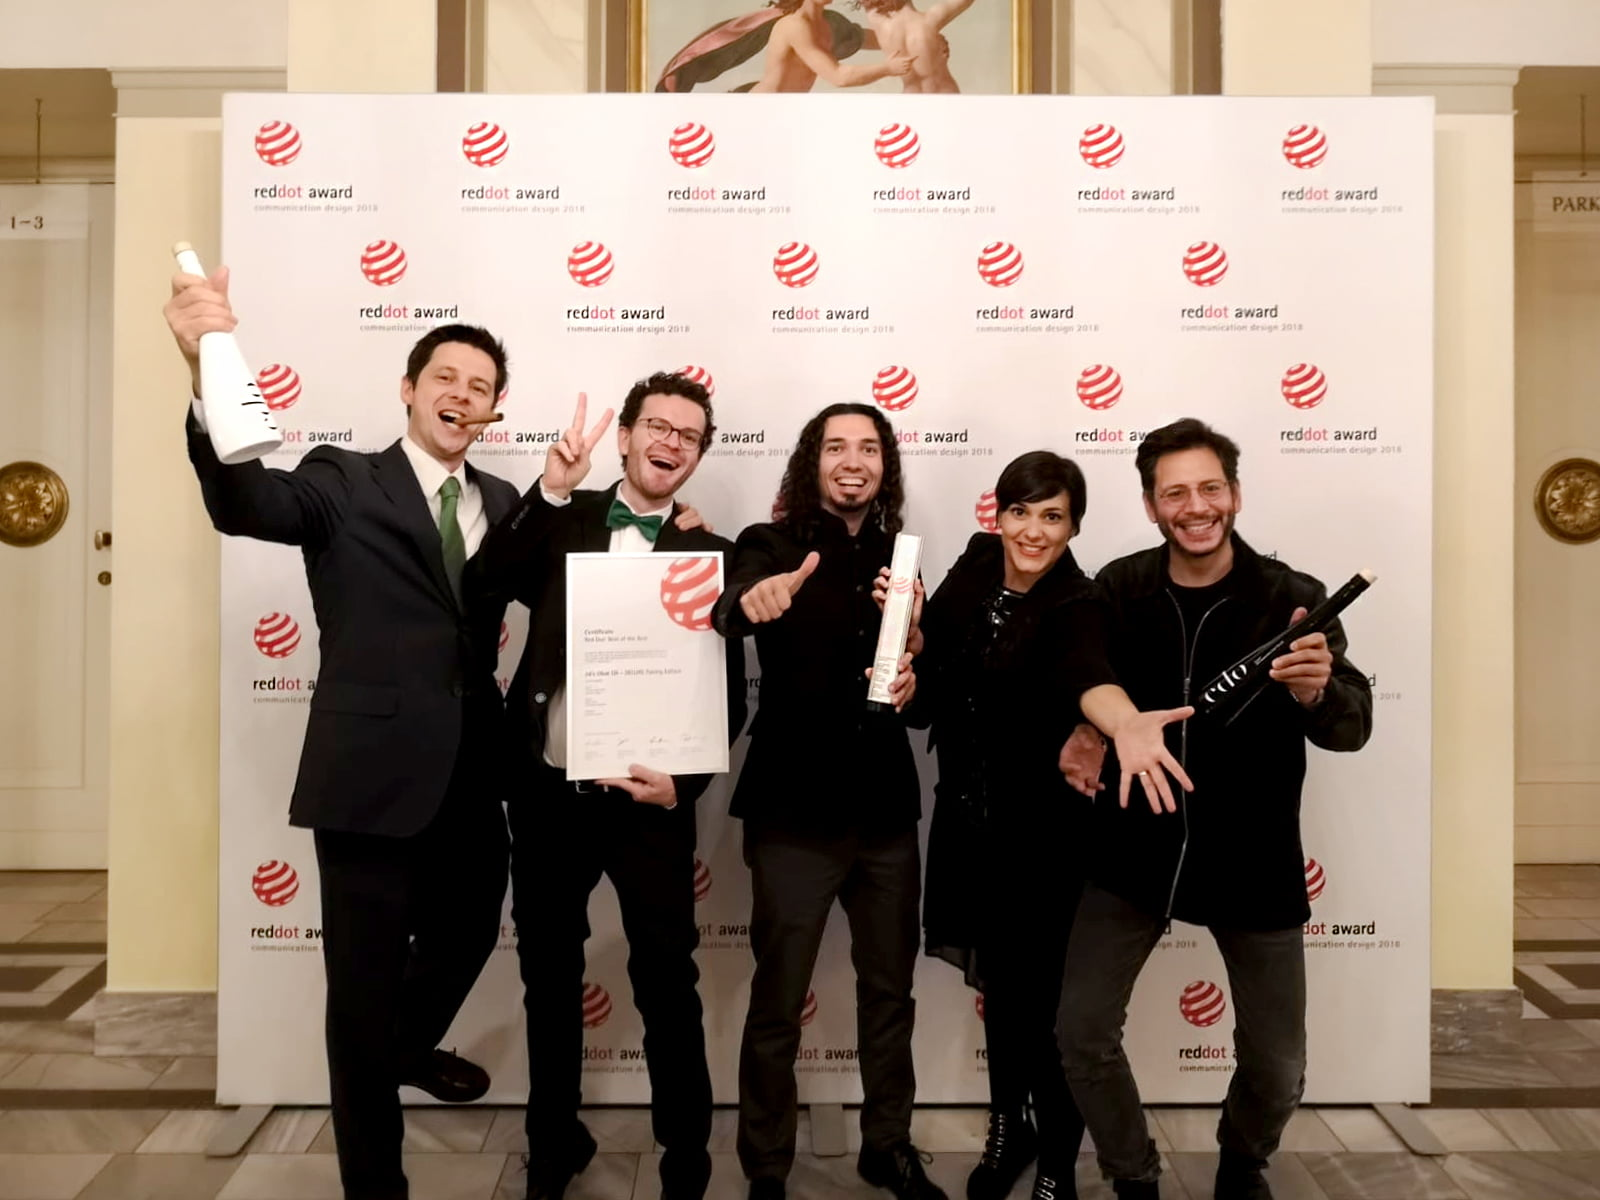 Red dot award winner team 2018 - Mediactiu consigue la máxima distinción de los Premios Red Dot Award 2018 de packaging